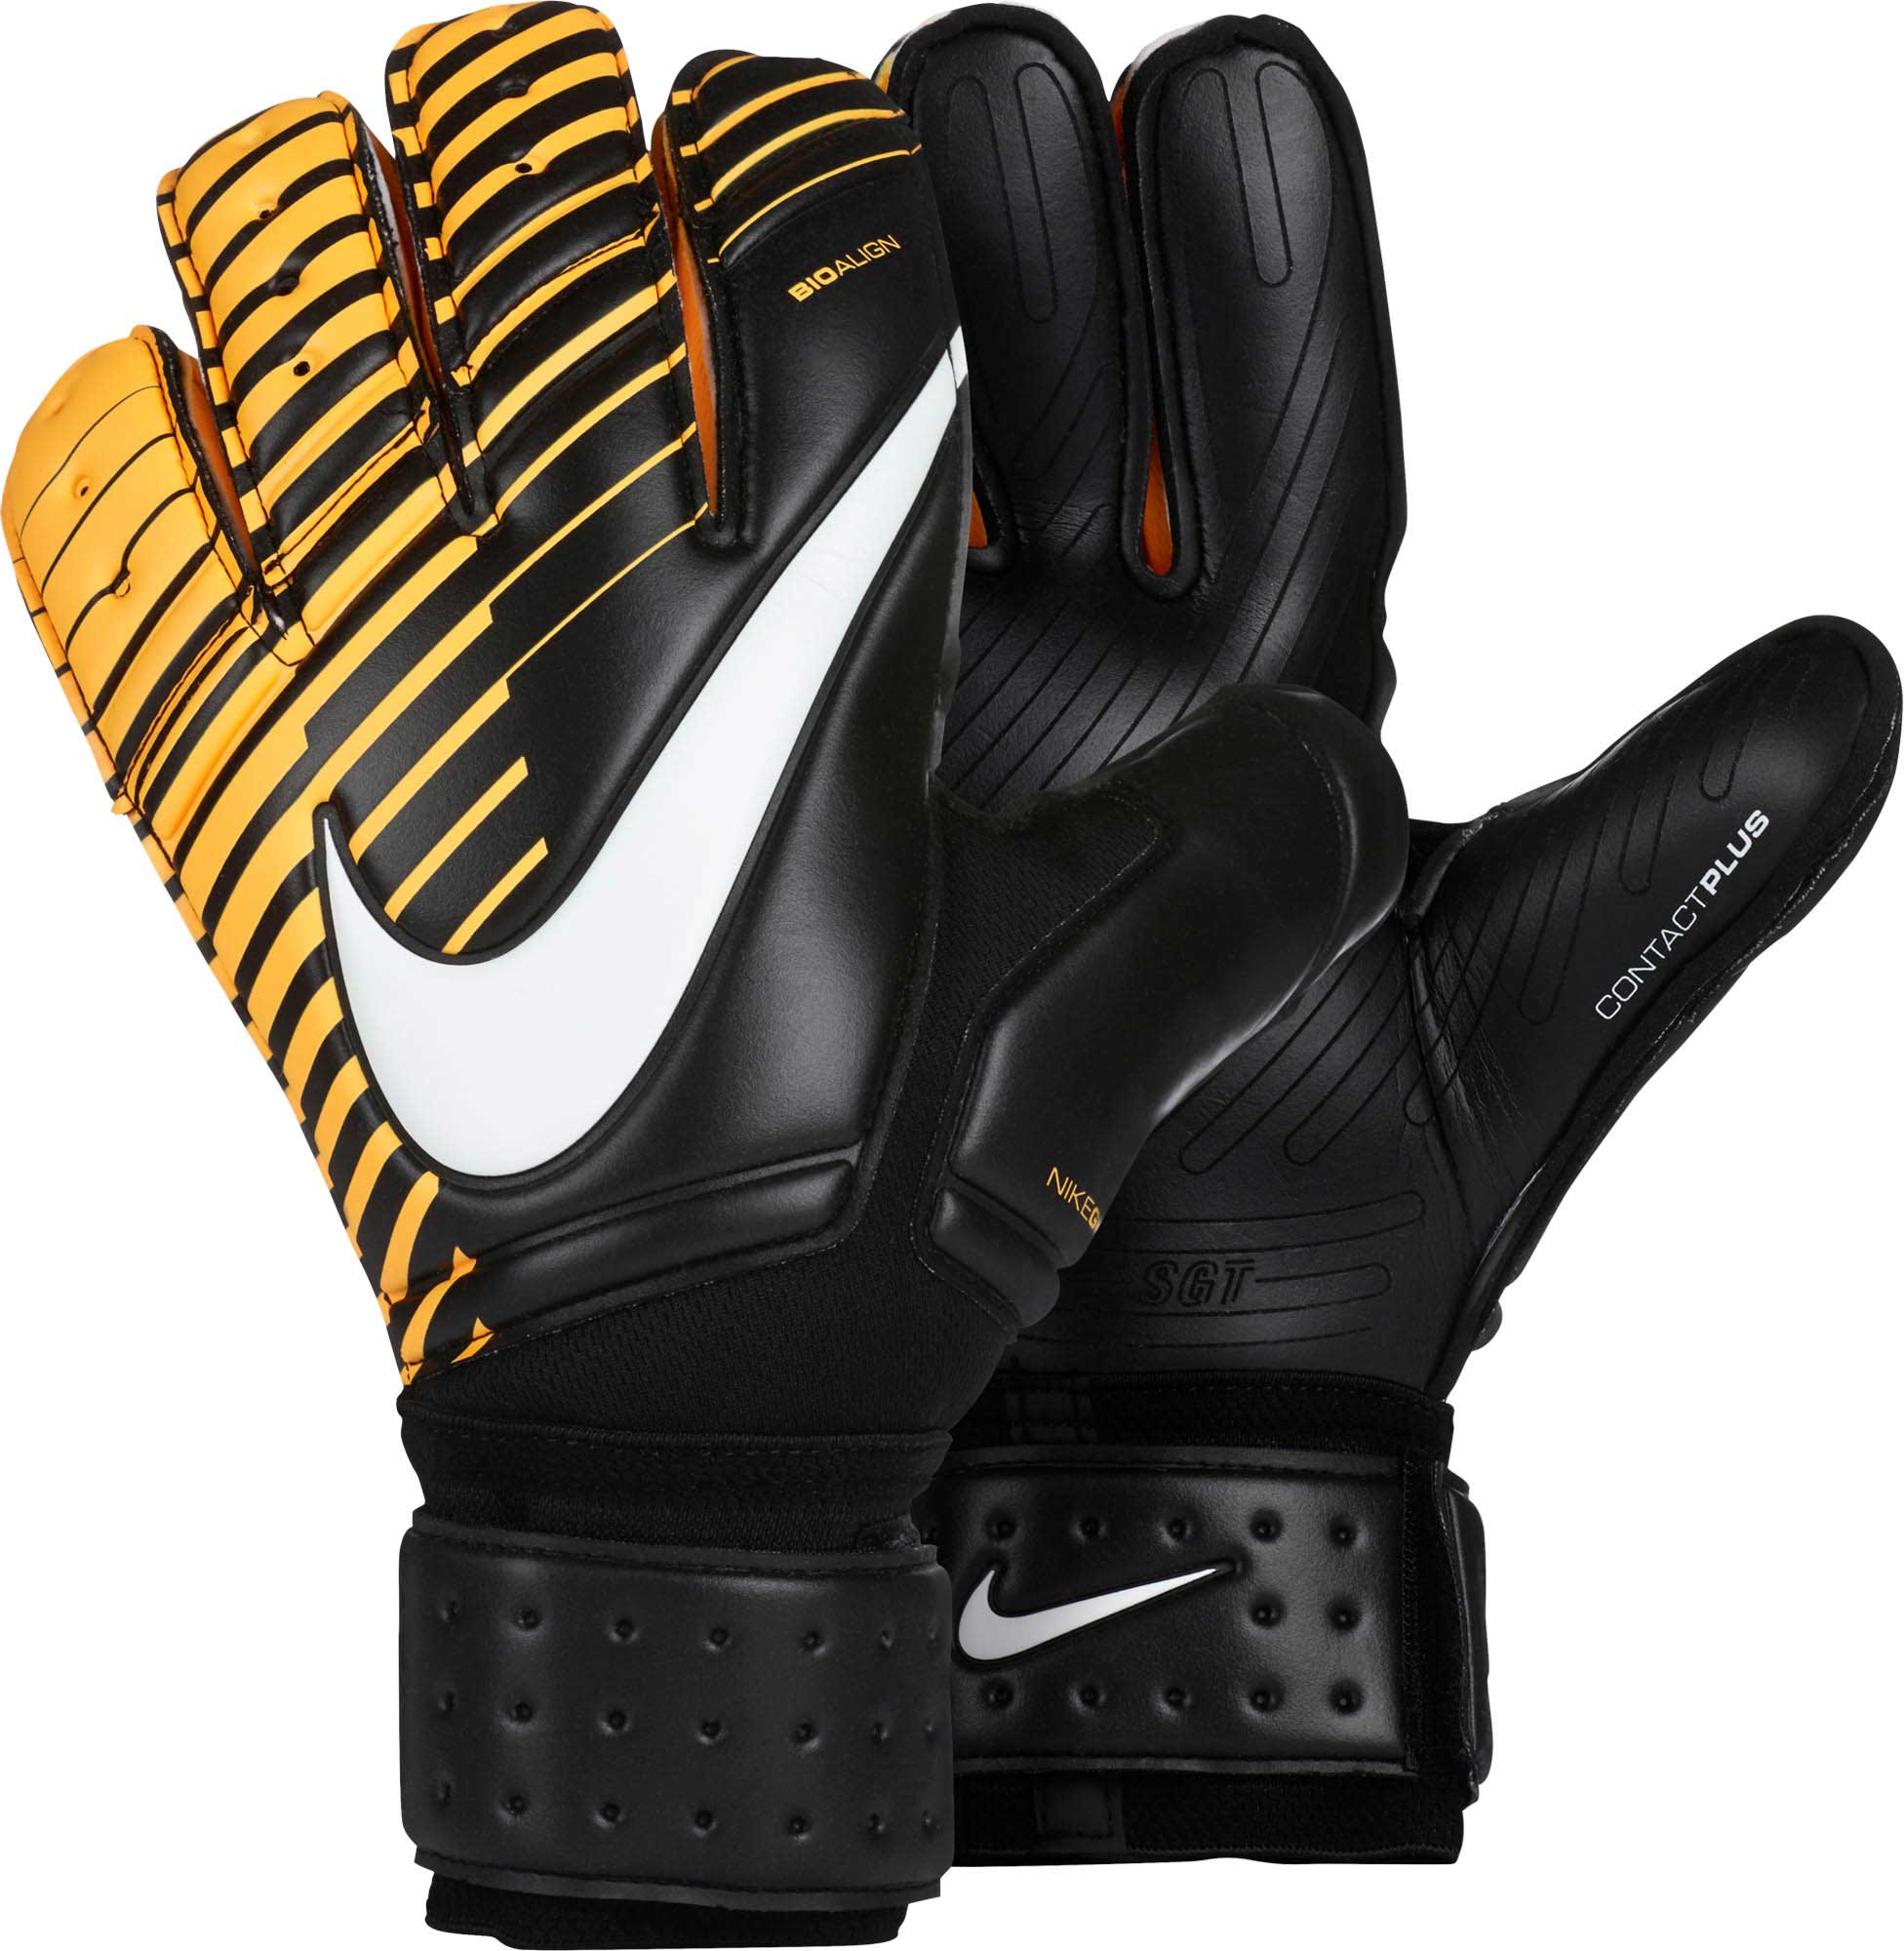 Nike Premier SGT Goalkeeper Gloves - Black & Laser Orange - Soccer Master